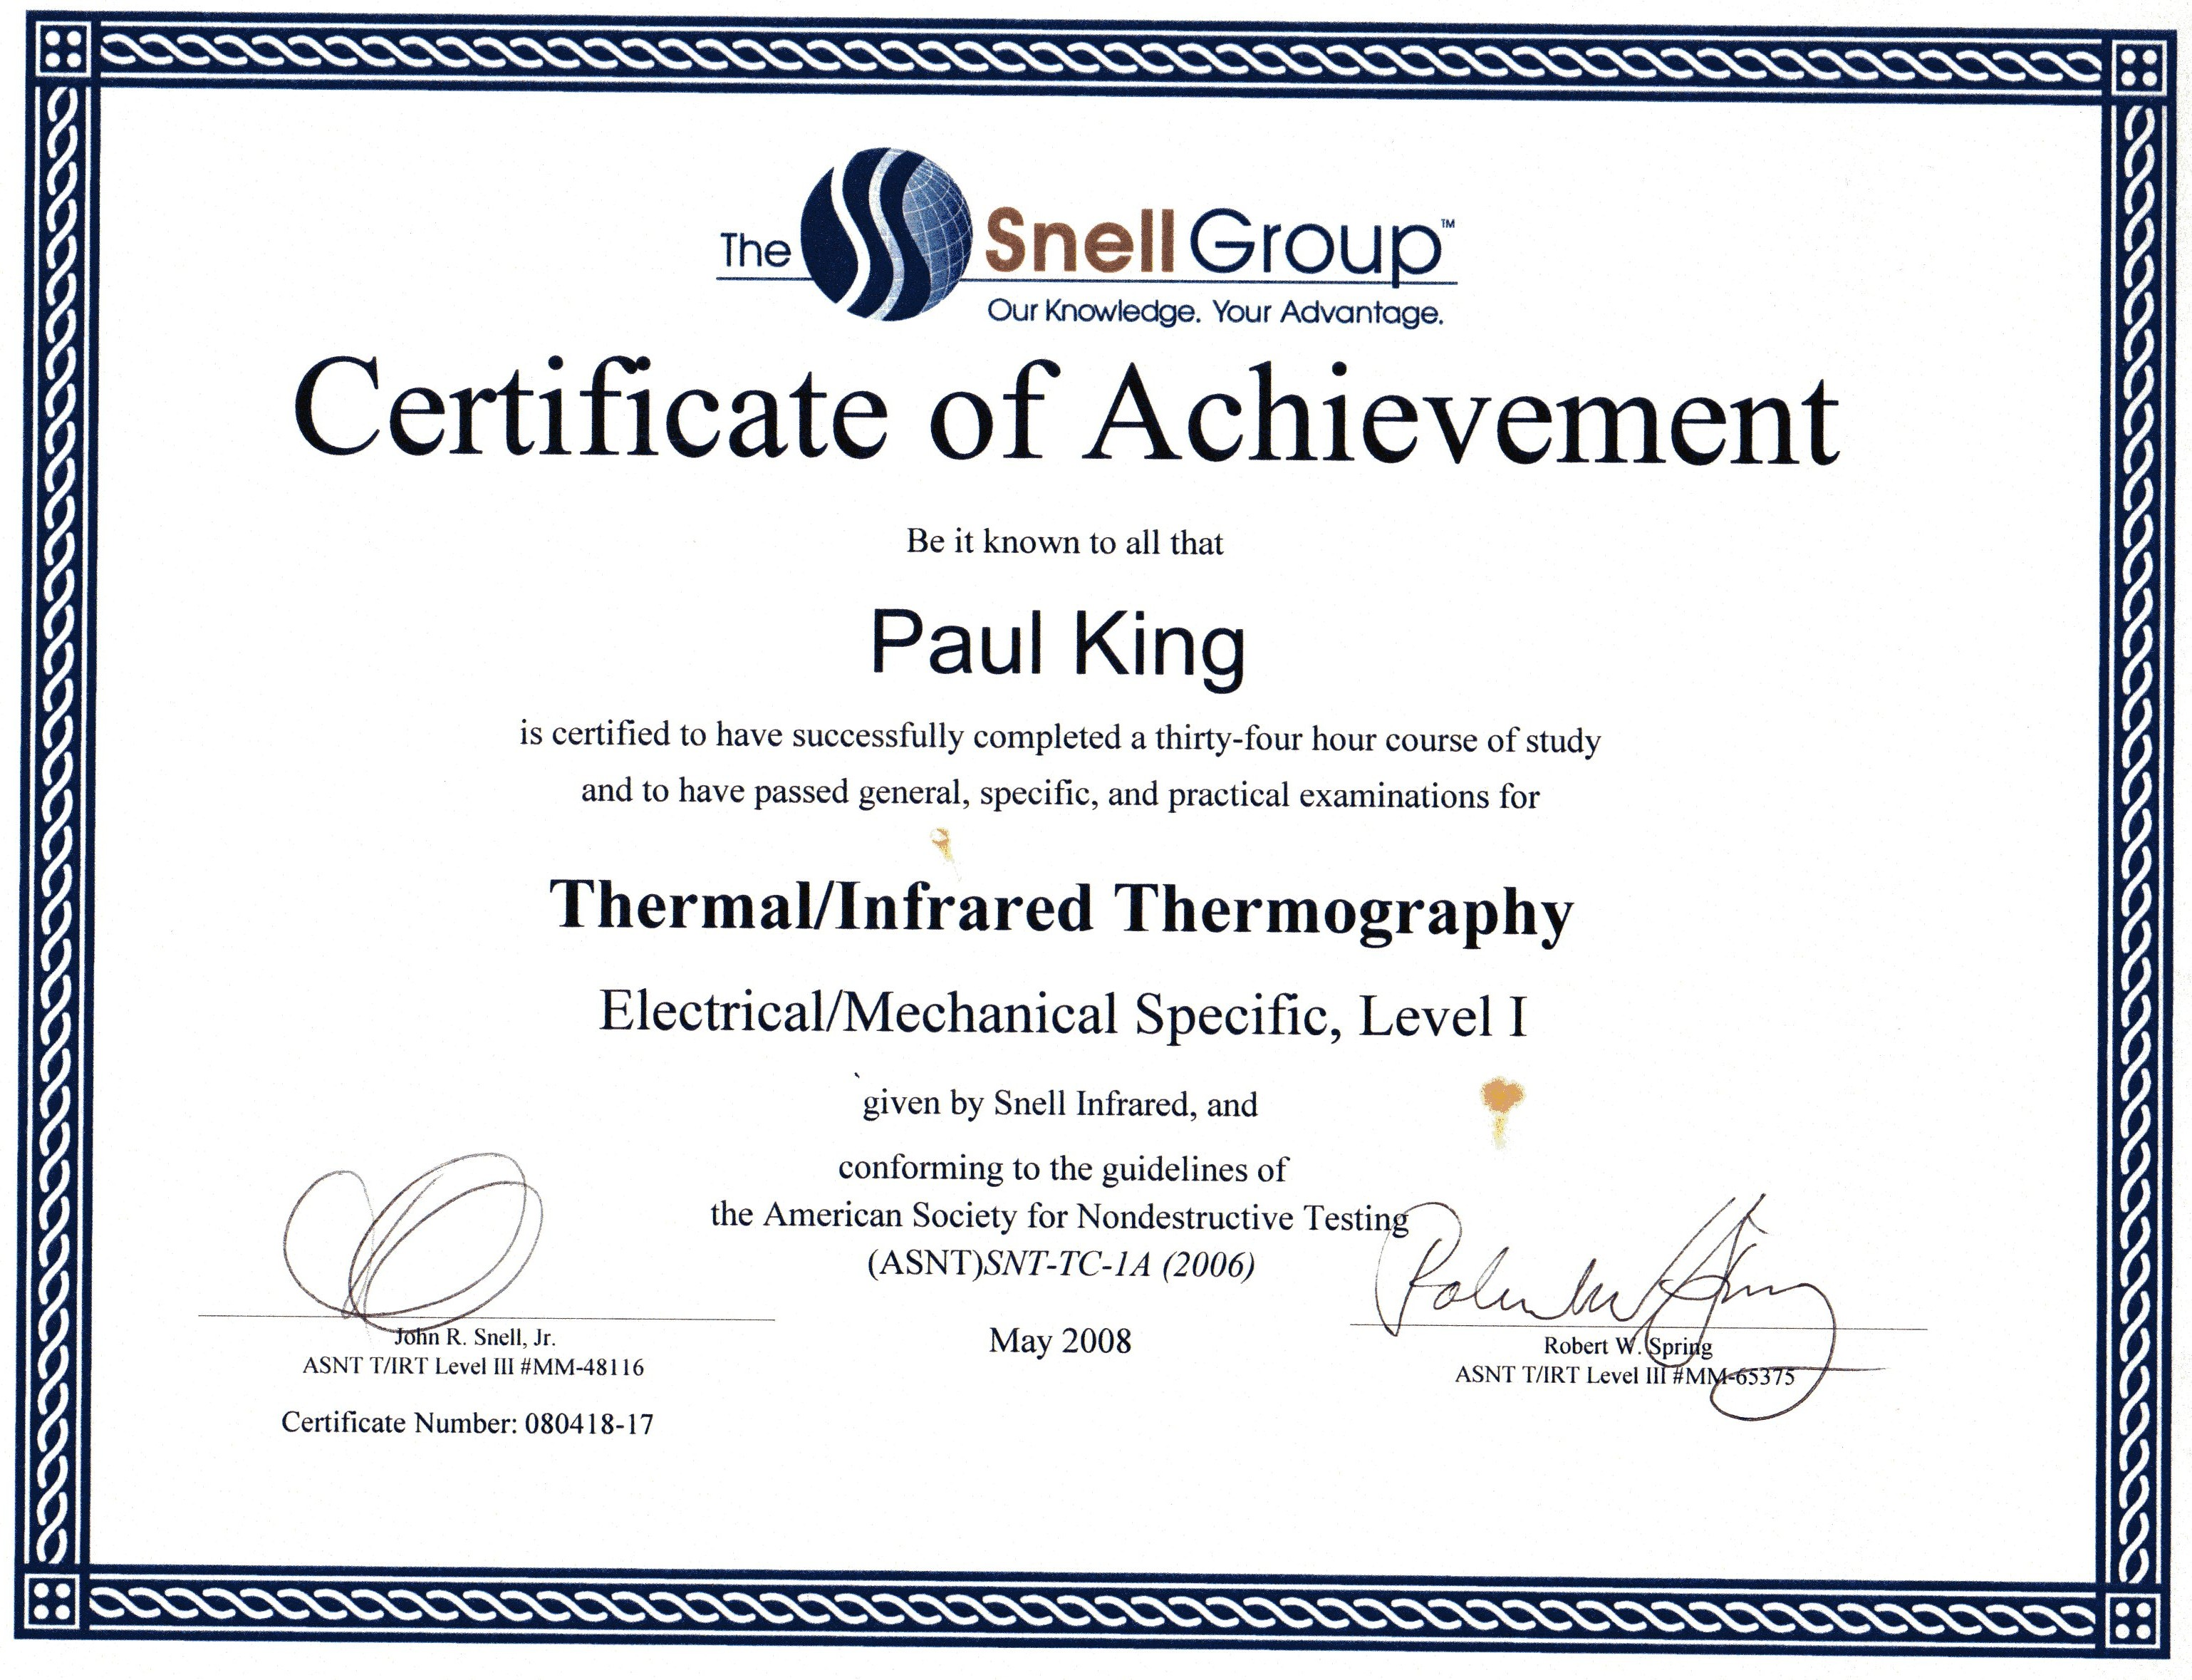 ASNT-Level-1-Electrical-Mechanical-Thermographer.jpg